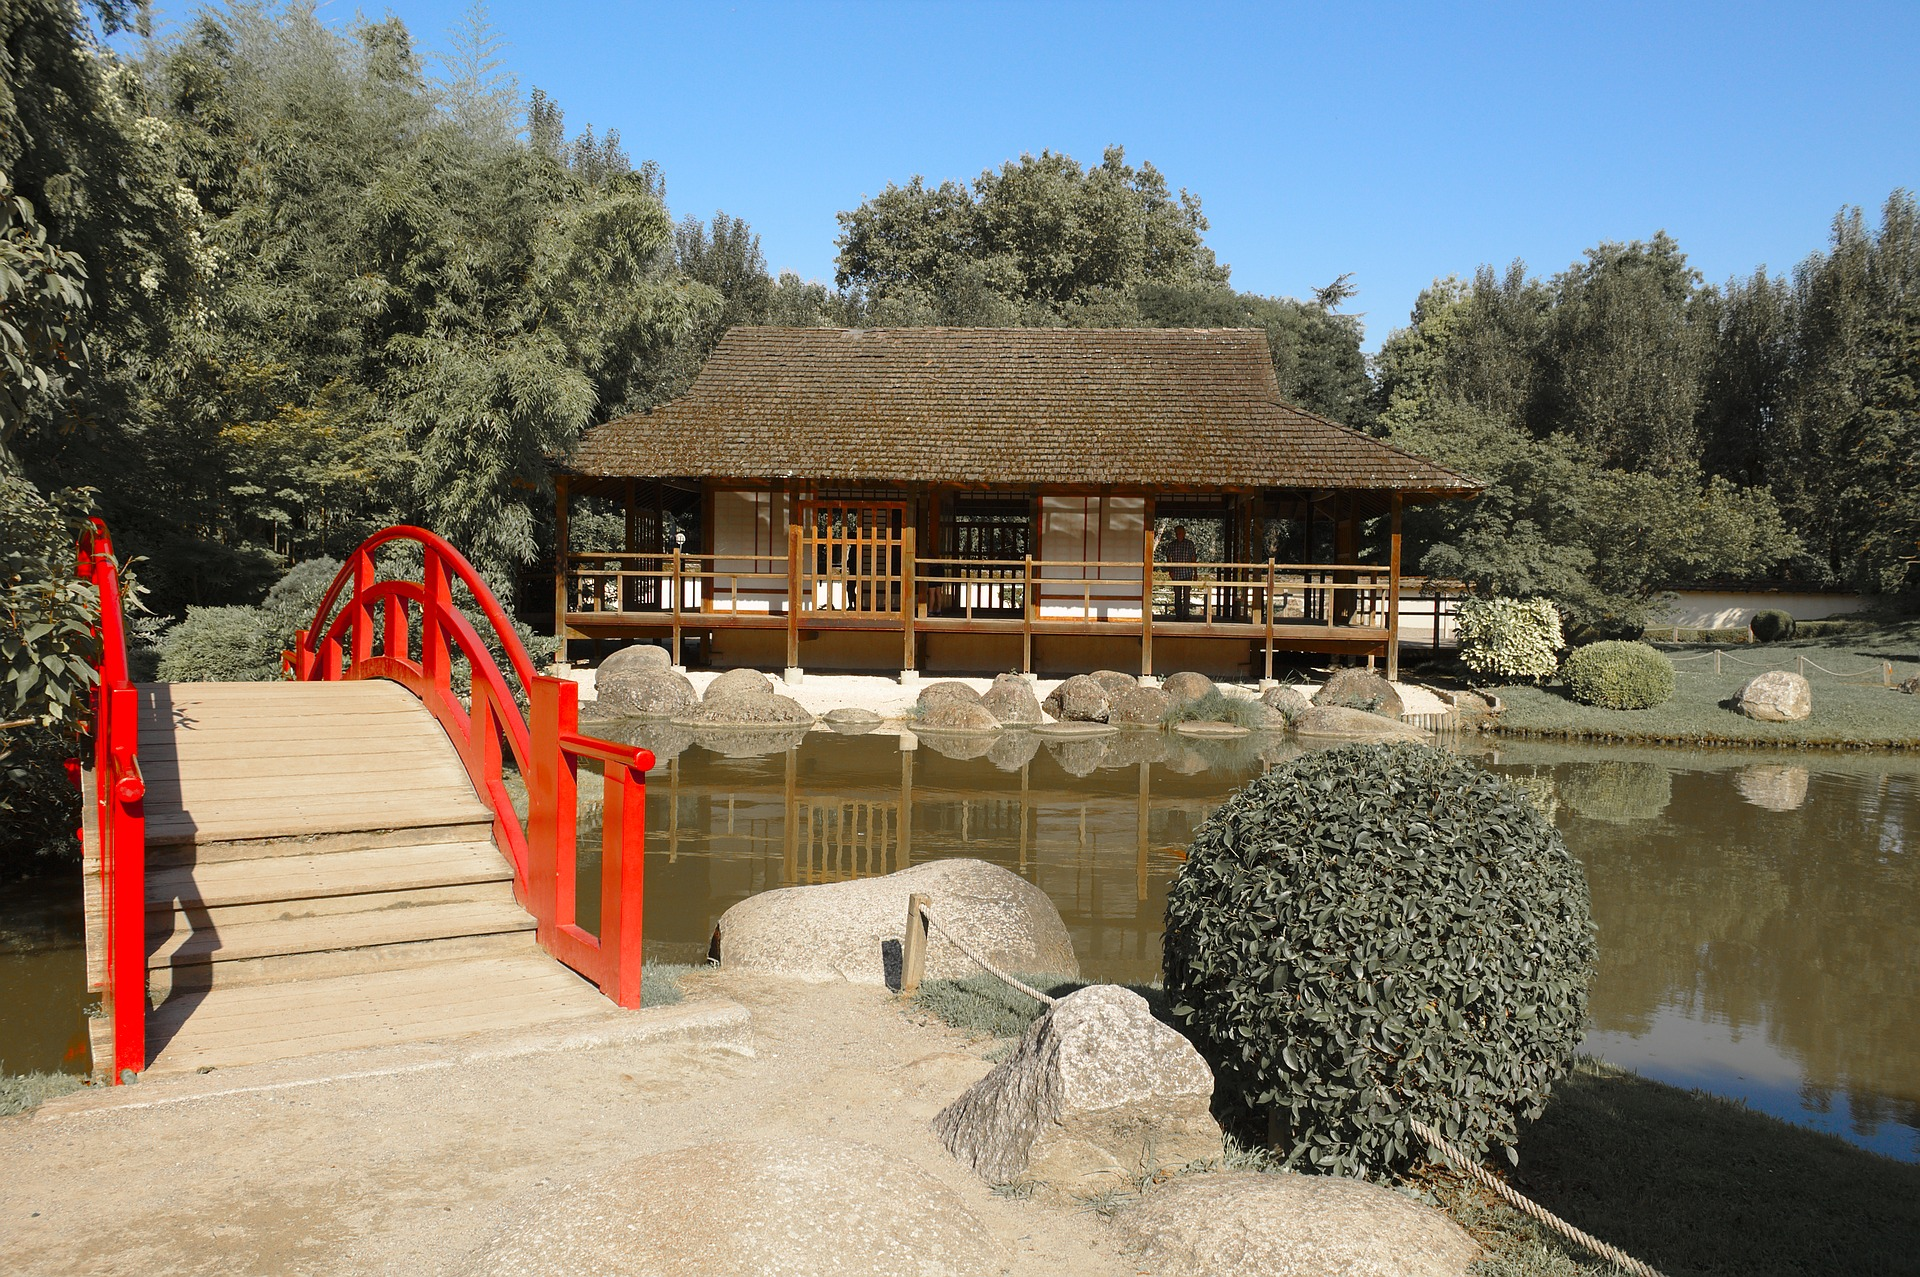 A tea house and a red-painted bridge.